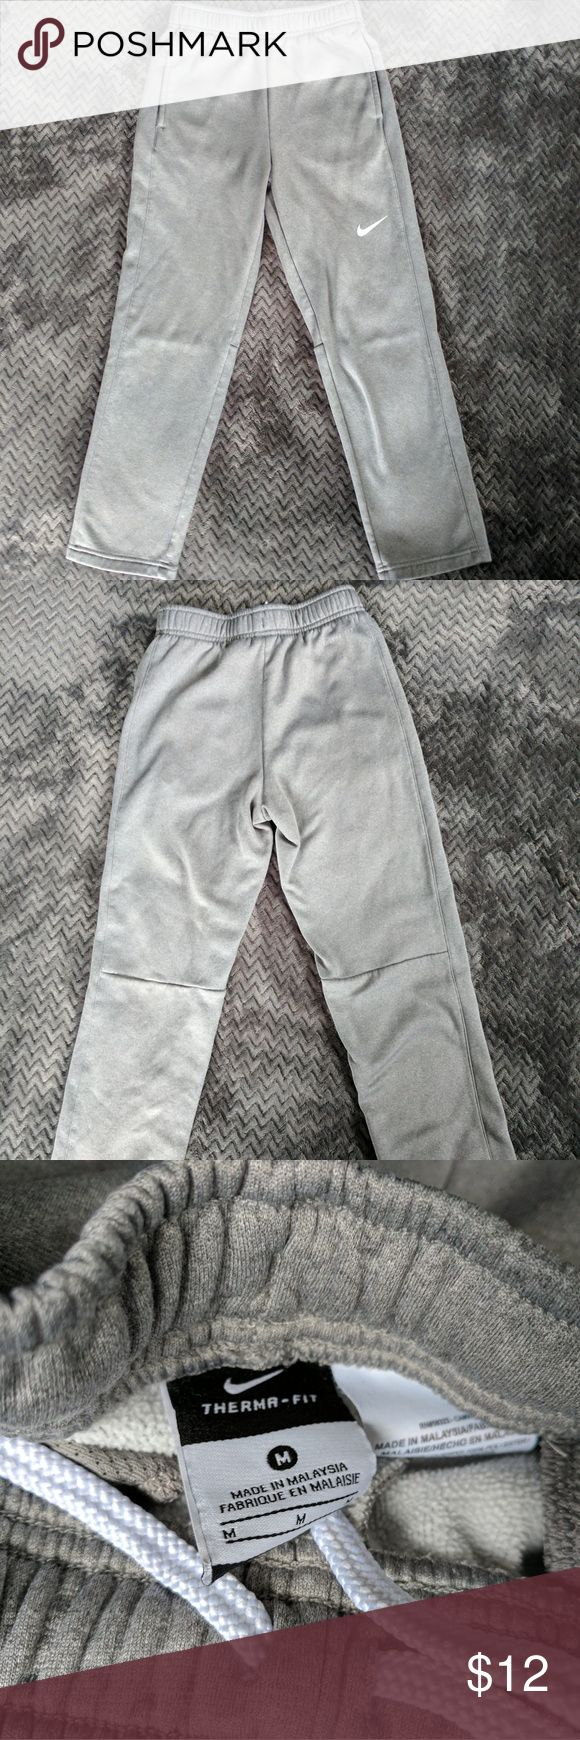 Nike Therma Fit Athletic Pants Boys Medium These Heather gray athletic pants are in excellent condition. Nike Bottoms Sweatpants & Joggers